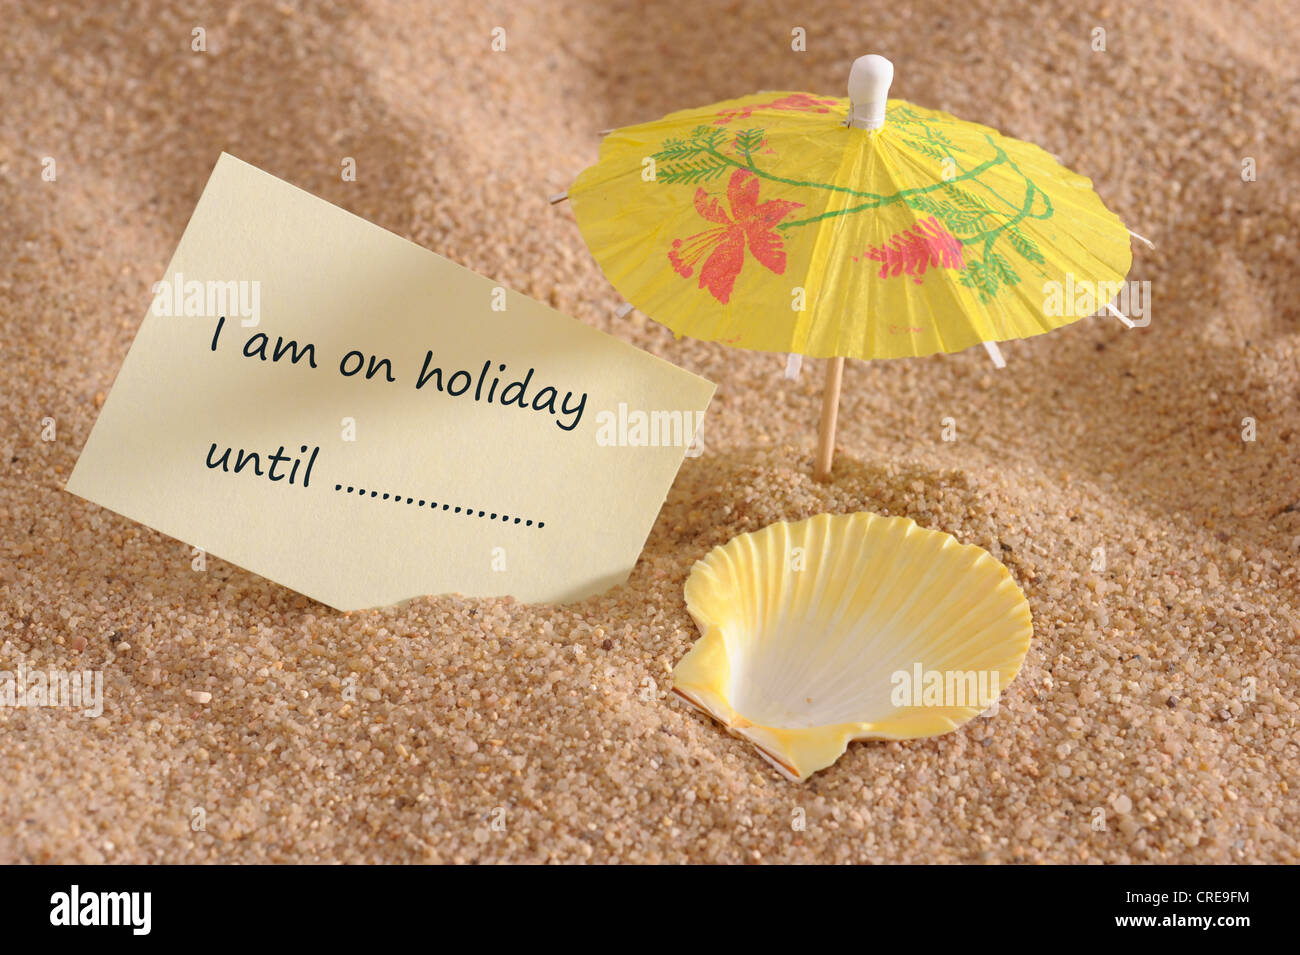 memo at beach marked with note for holiday - Stock Image